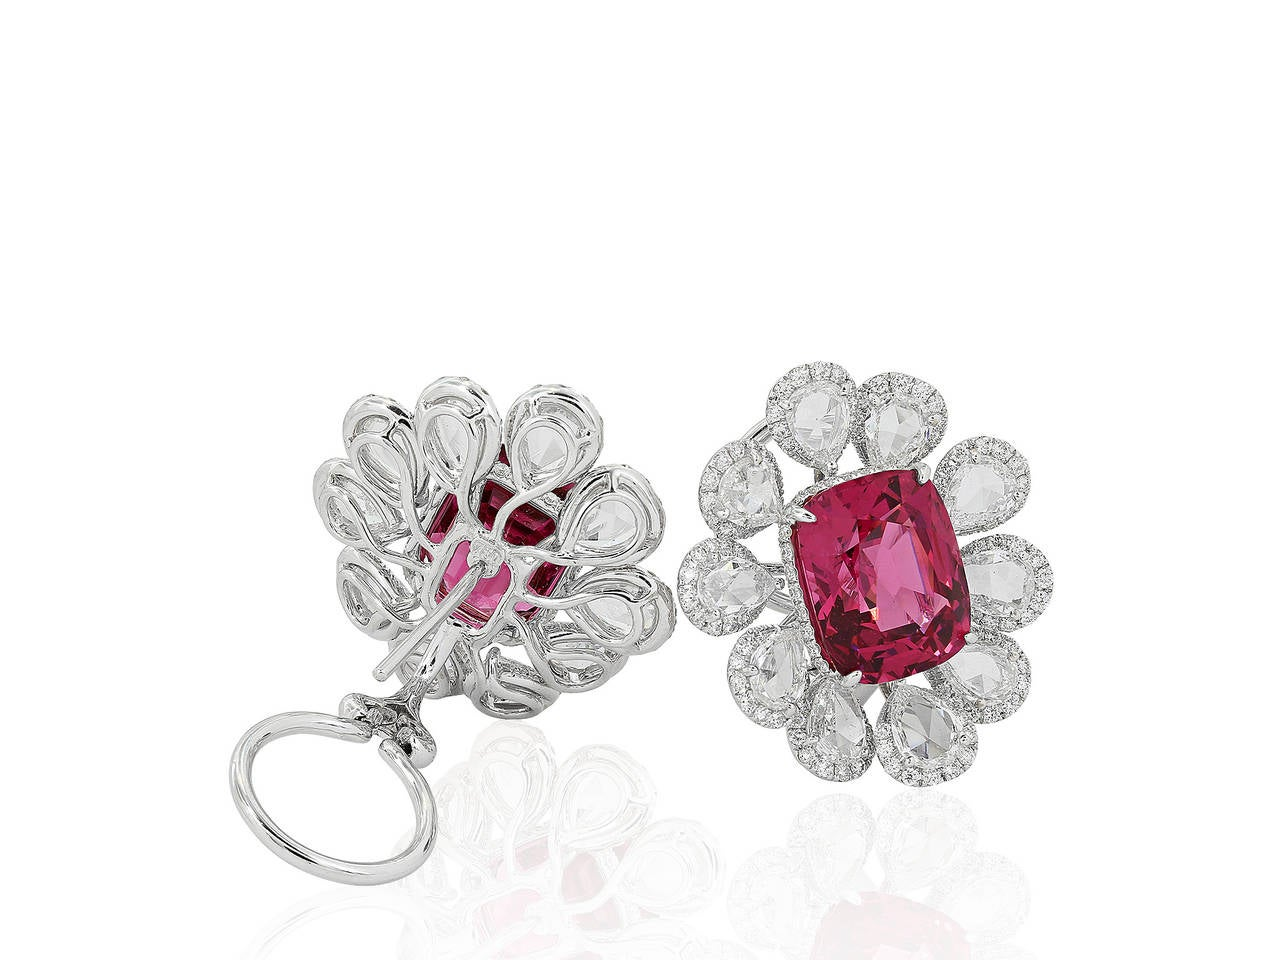 1469 Carat Pink Spinel Diamond Gold Cluster Earrings 2